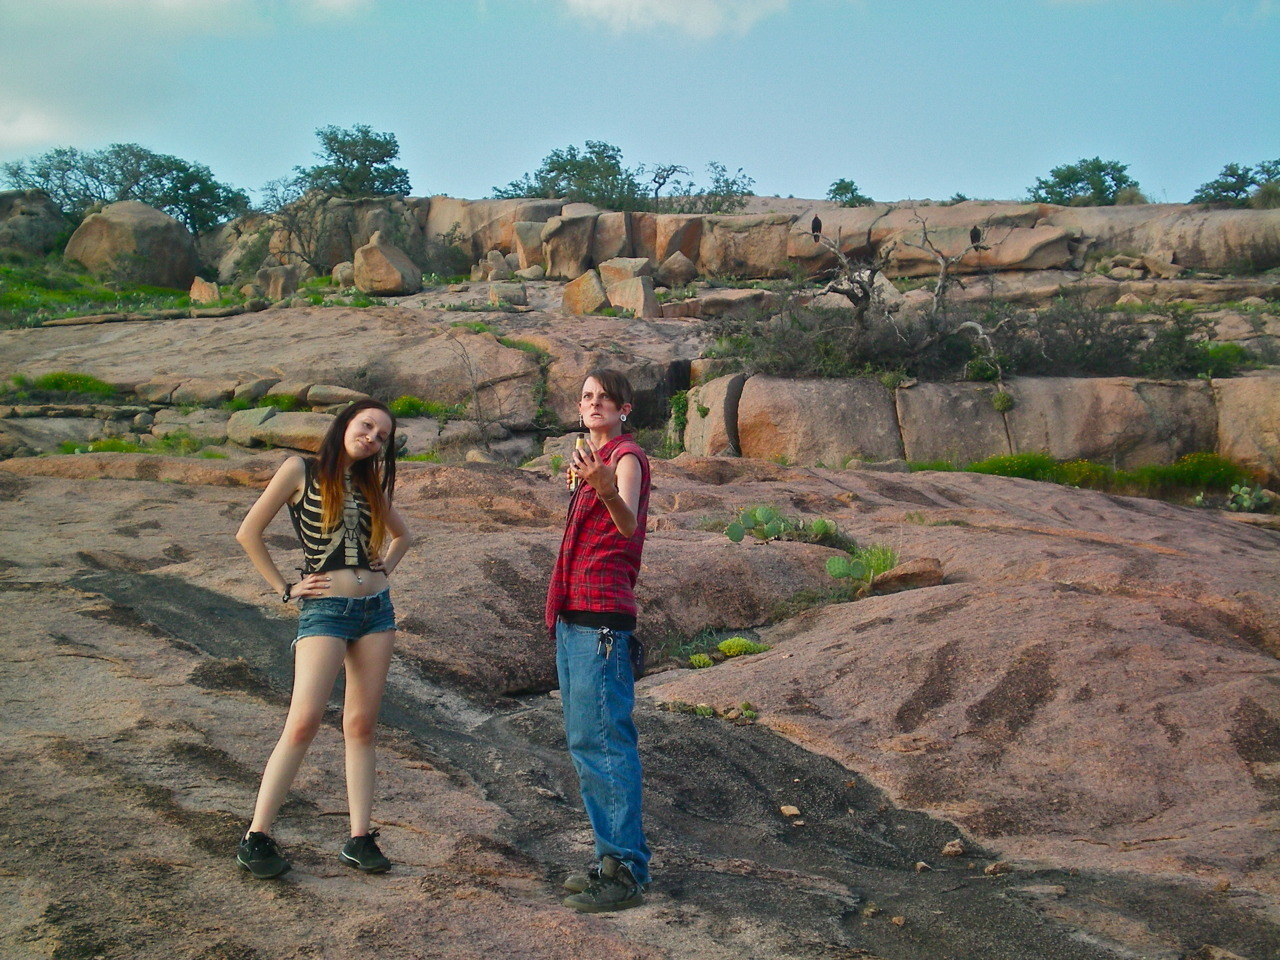 best friend and i hangin' out with vultures on enchanted rock.. nbd.